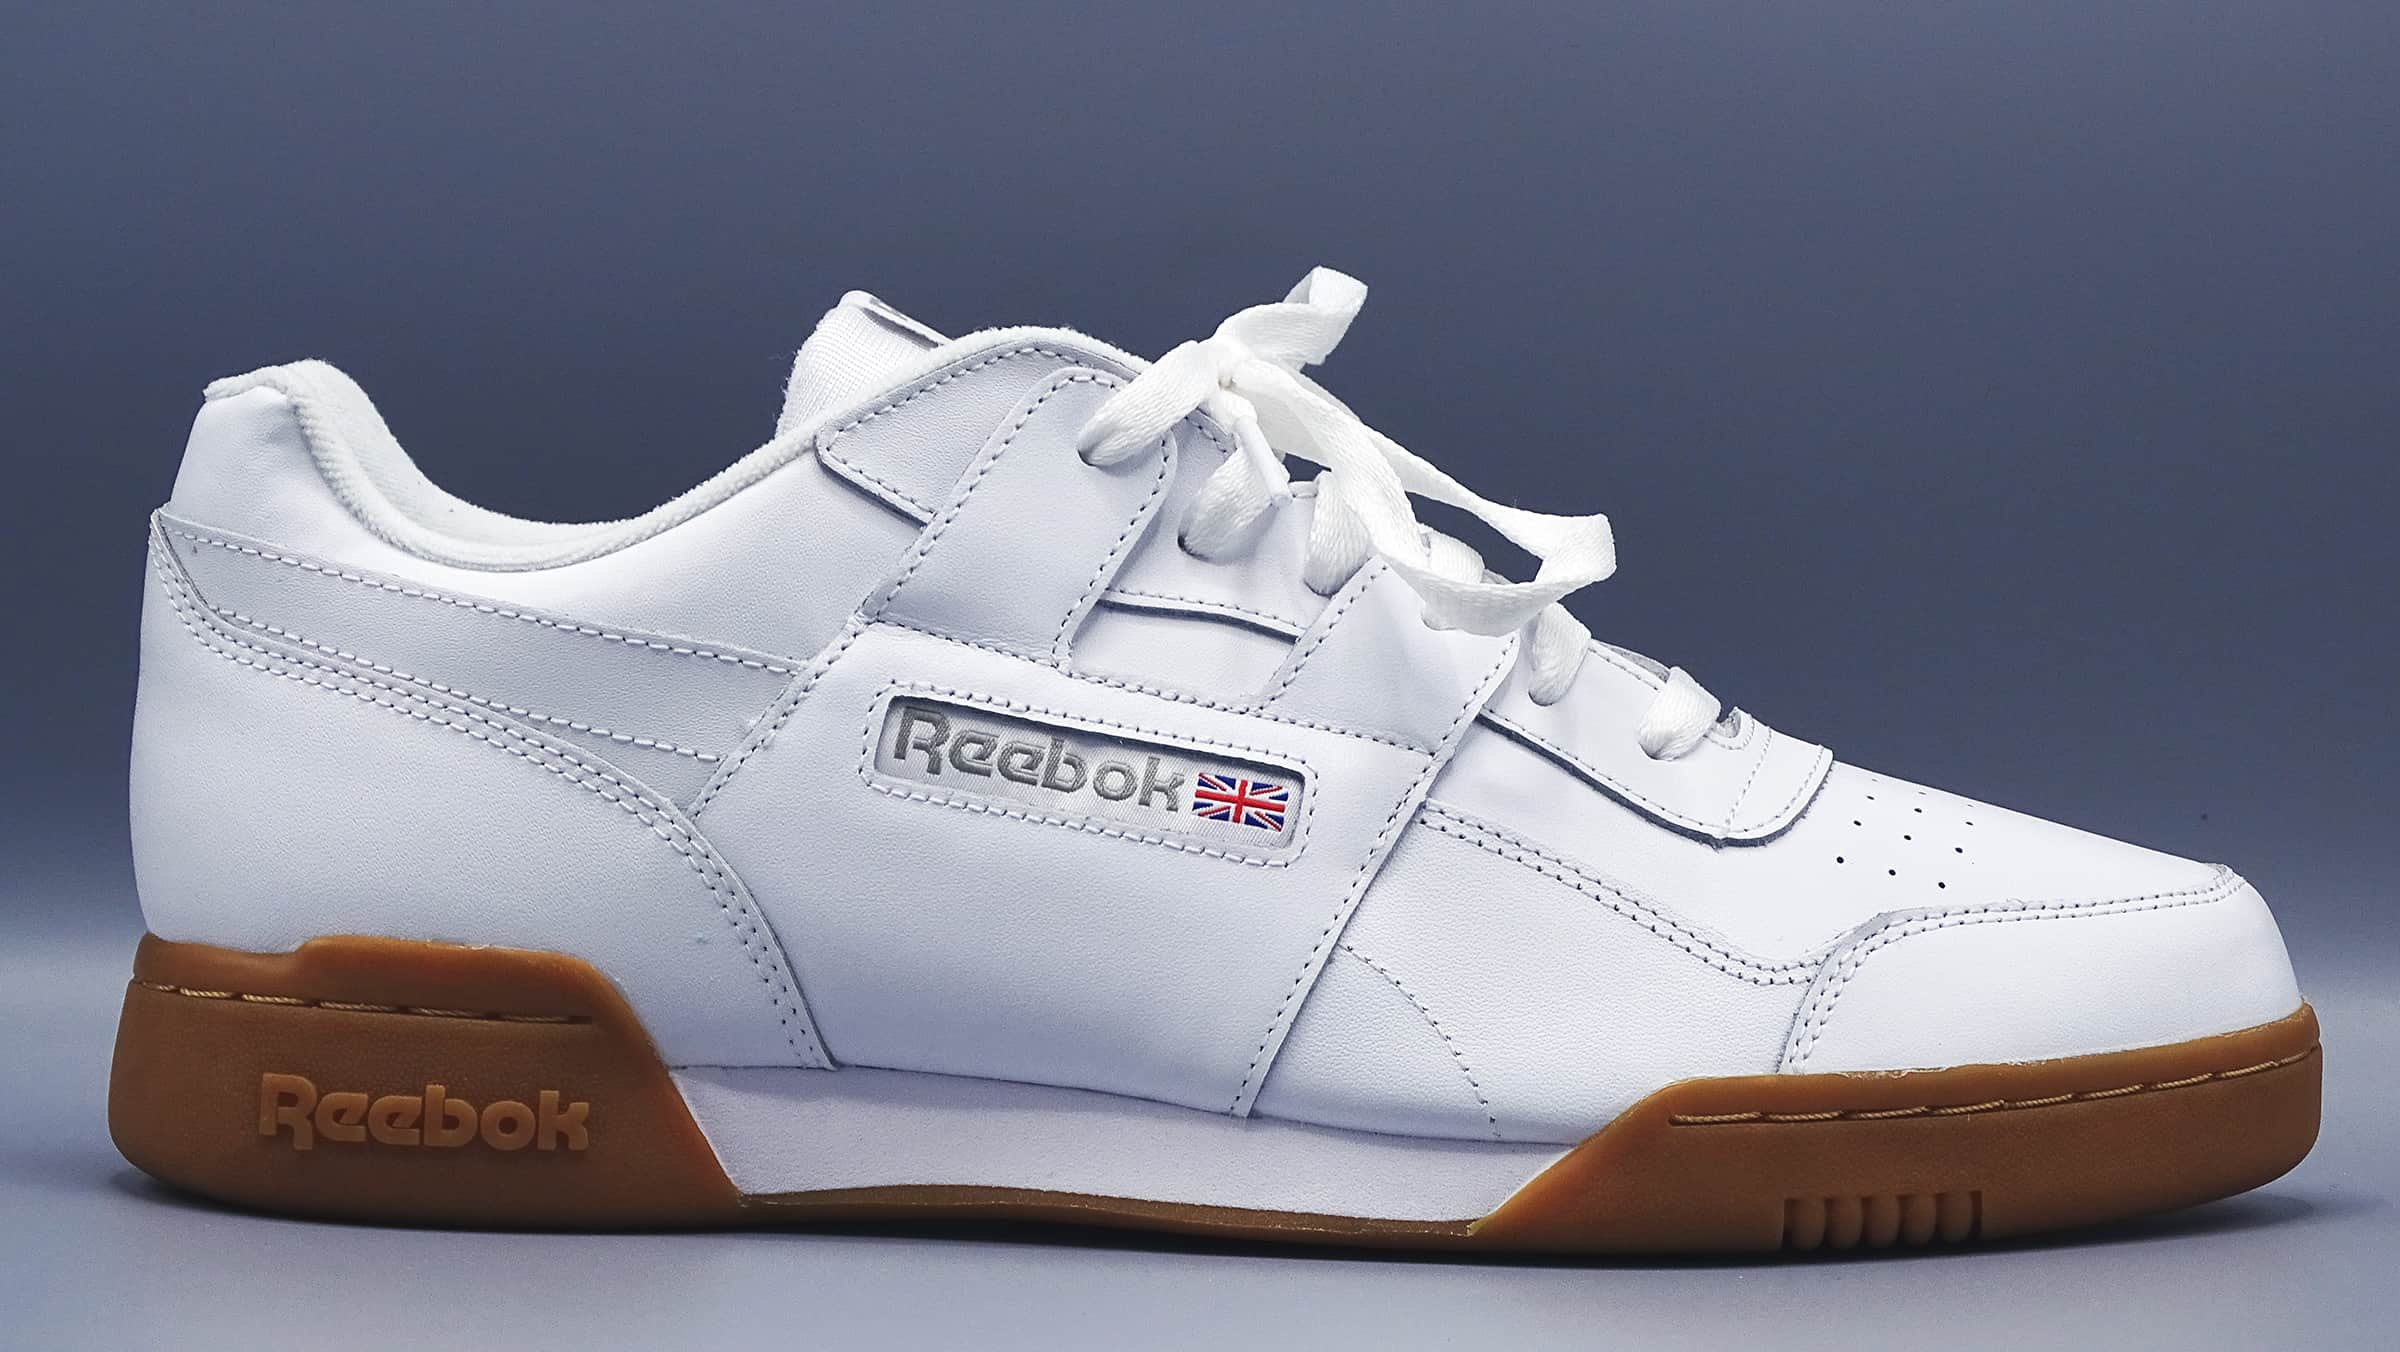 White men's reebok sneaker with gum colored bottom